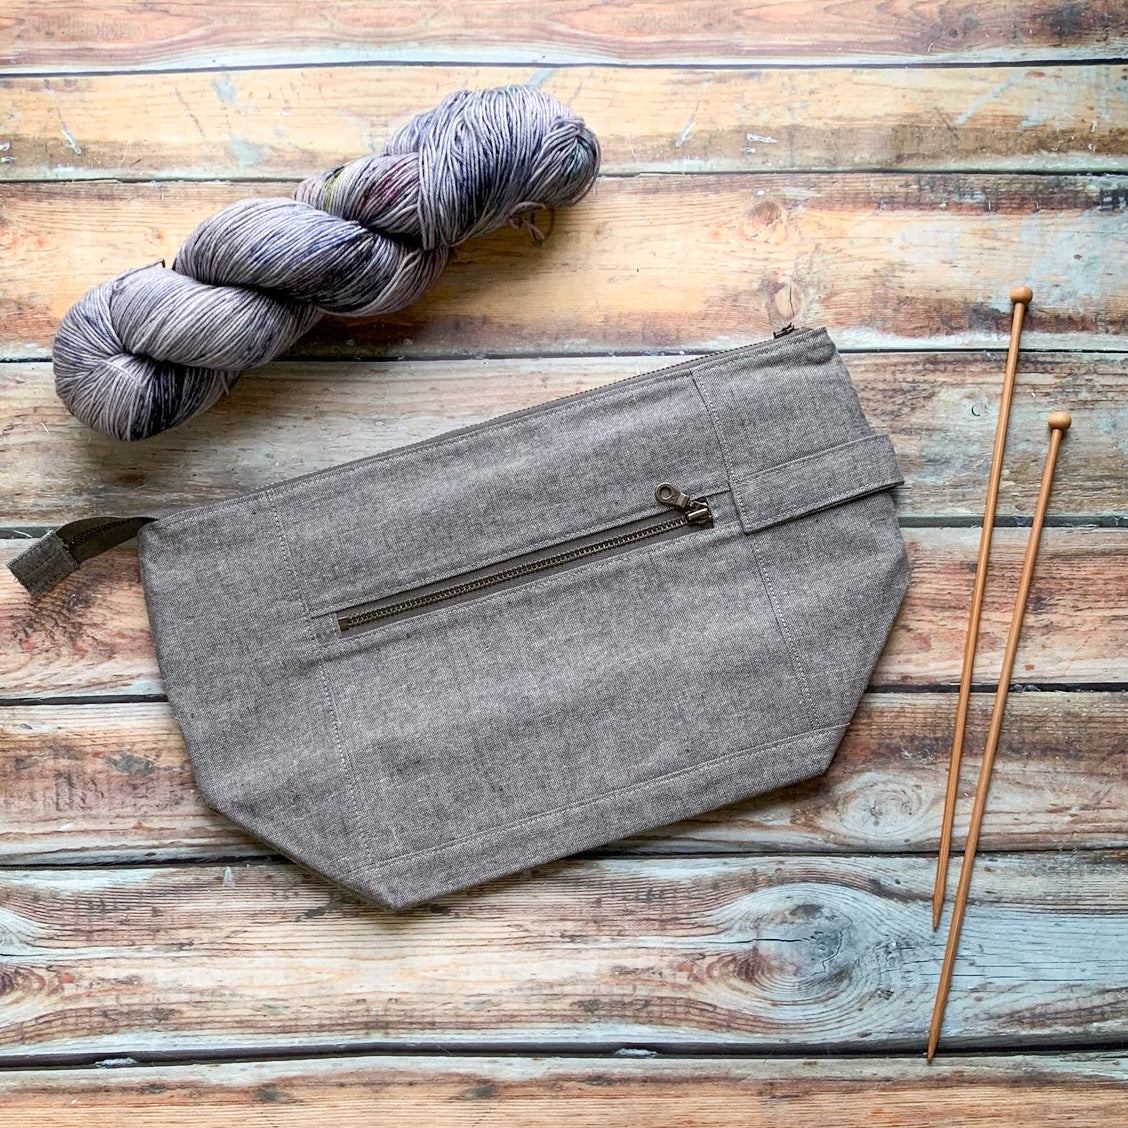 Woodsy and Wild Birch Bag- Grey Zippered Knitting Project Bag